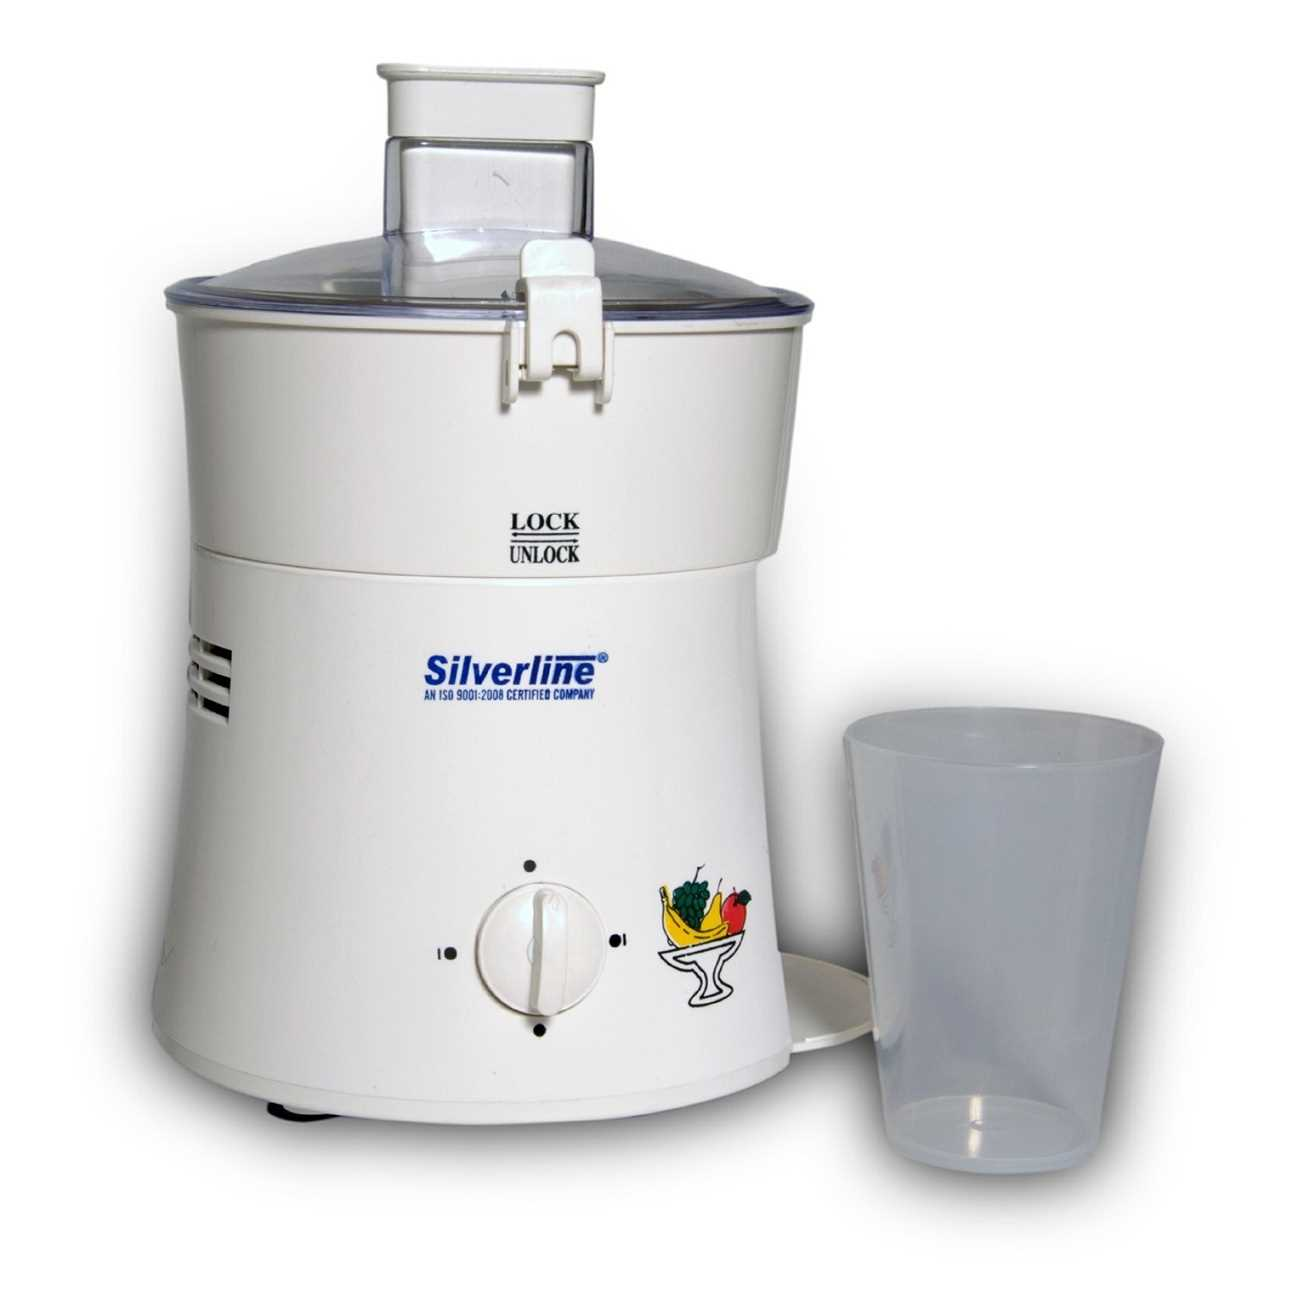 Silverline EKHAJT 450 W Juicer